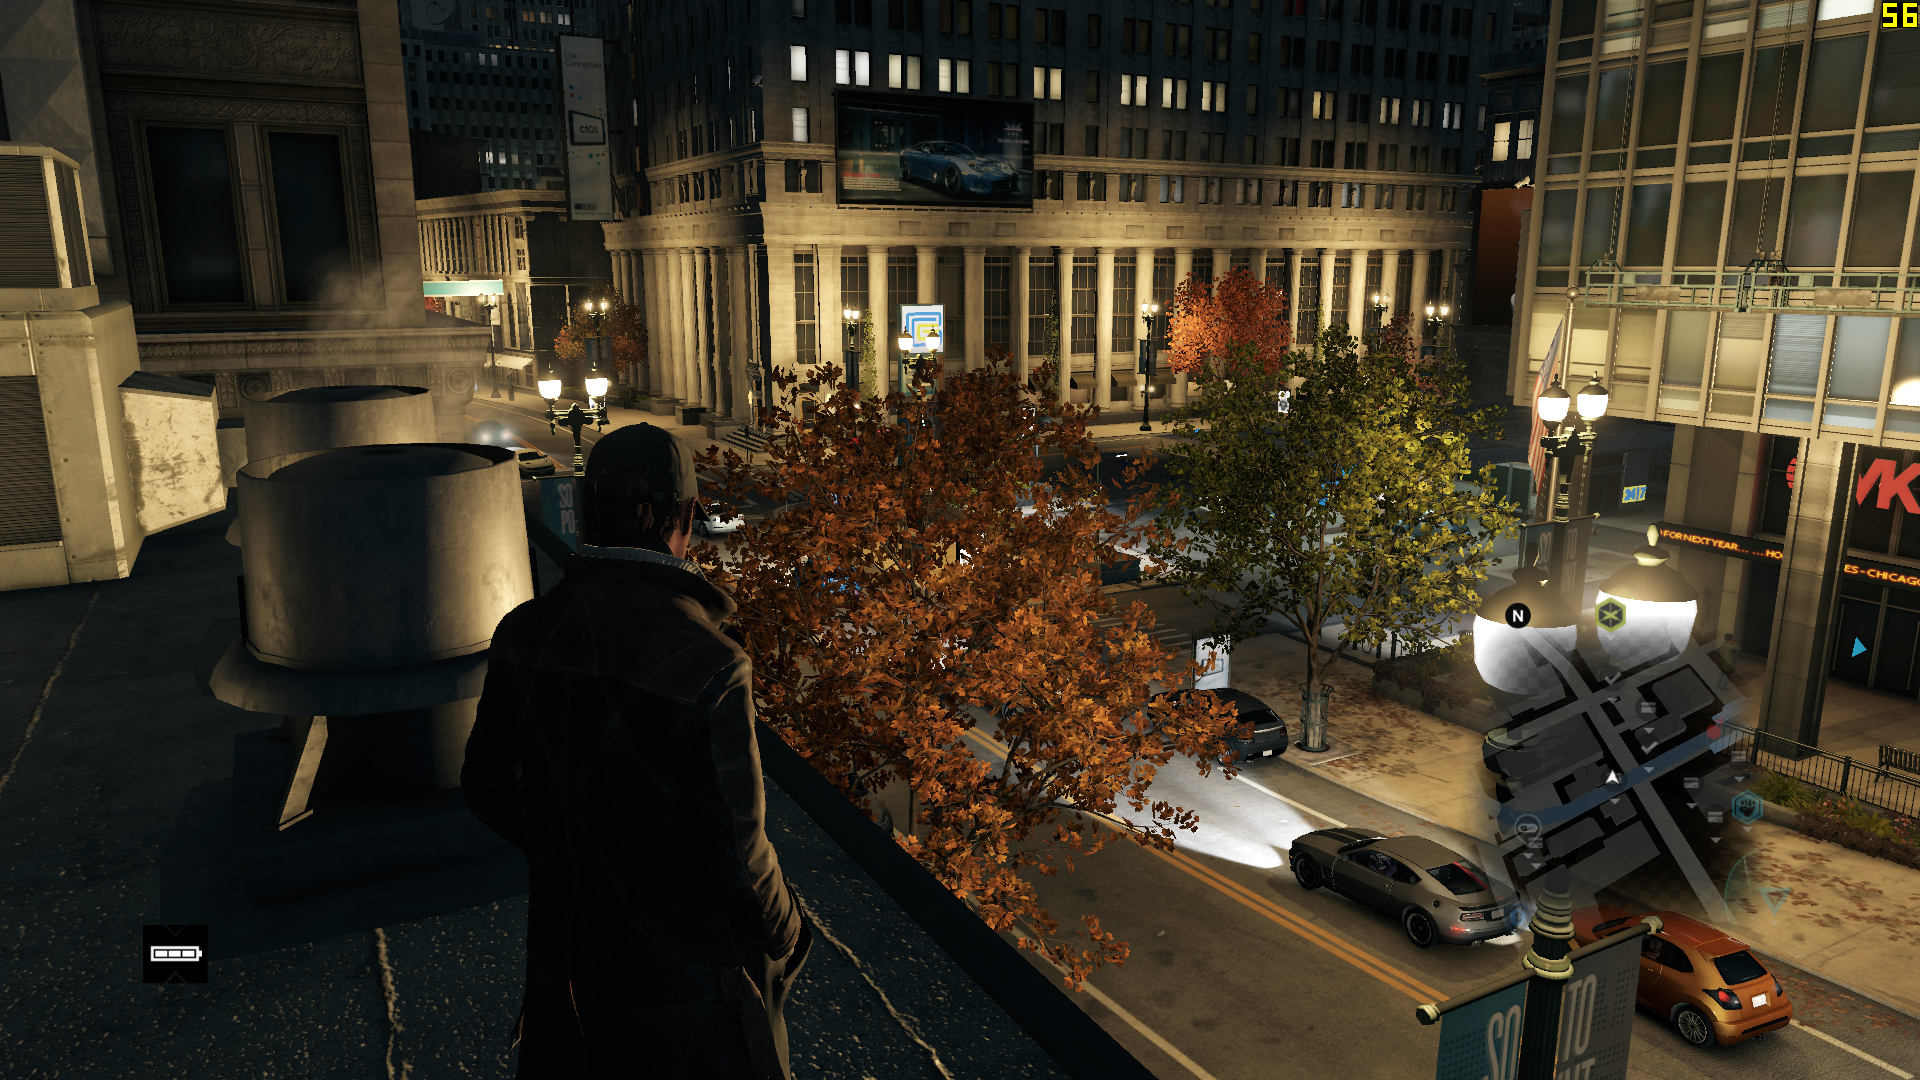 watch_dogs--009b0rp2.png